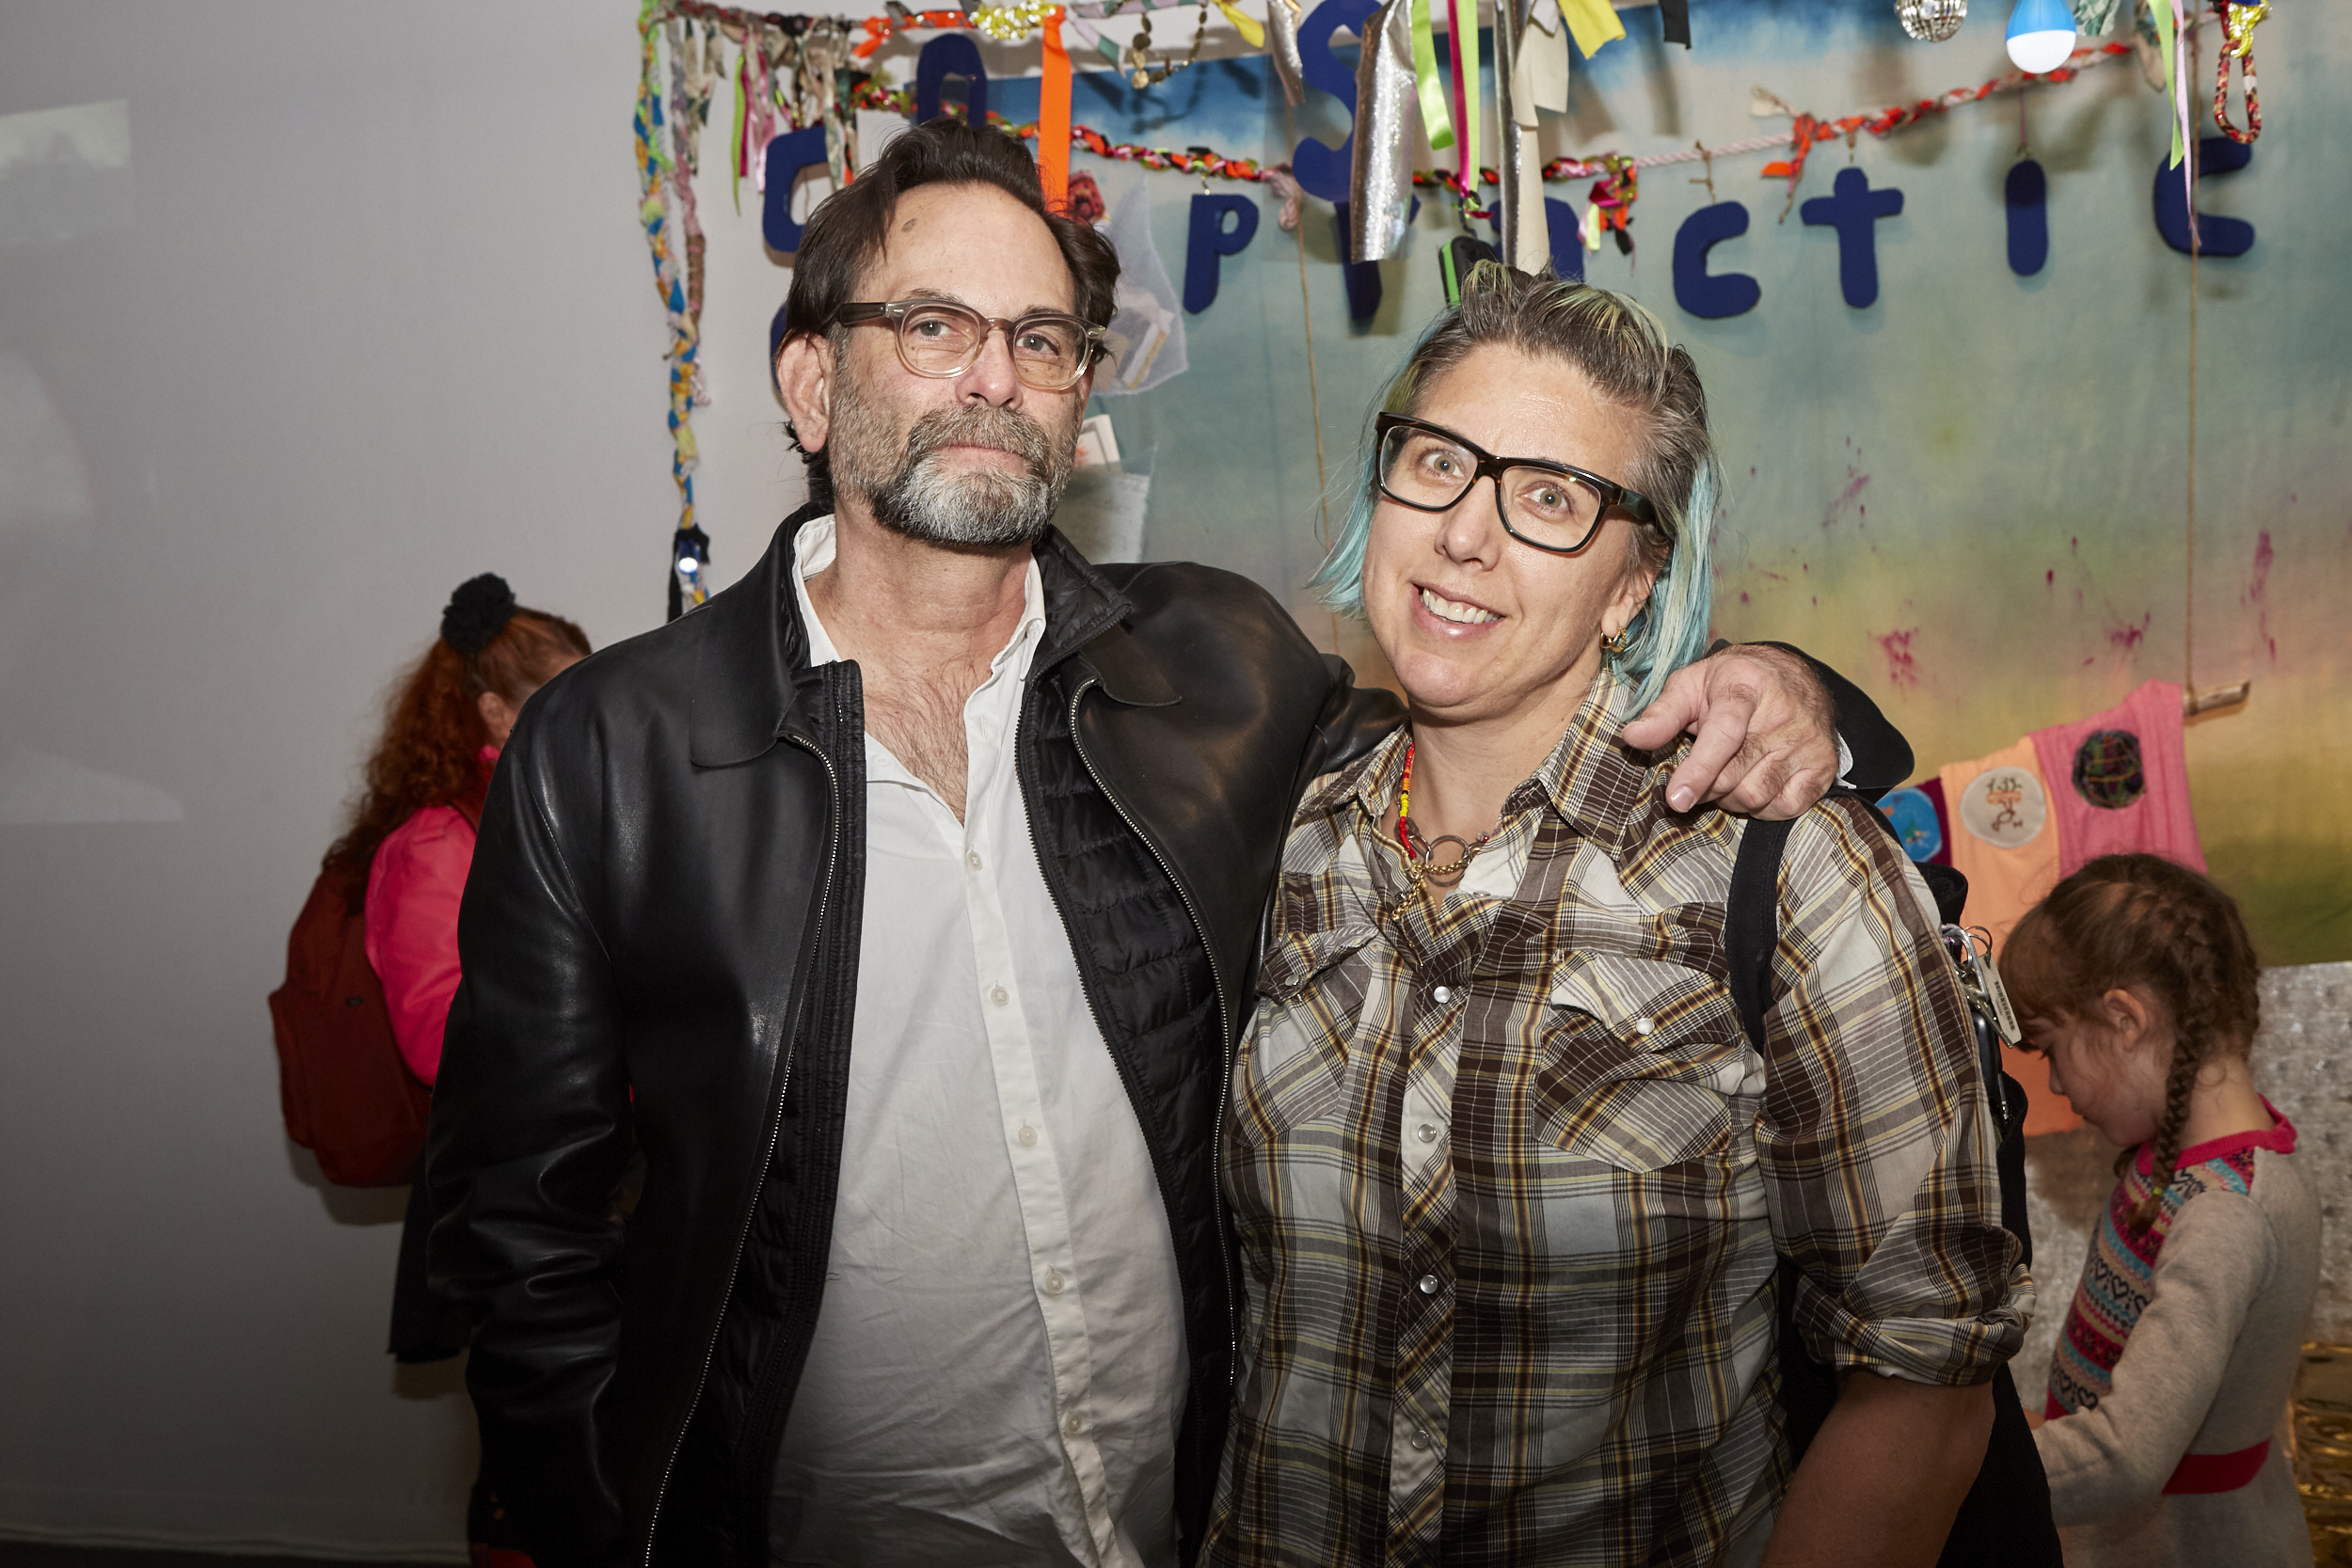 Mentors Avram Finkelstein and Liz Collins at Opening Reception of QAM 2015-2016 Annual Exhibition (Photo by Eric McNatt)